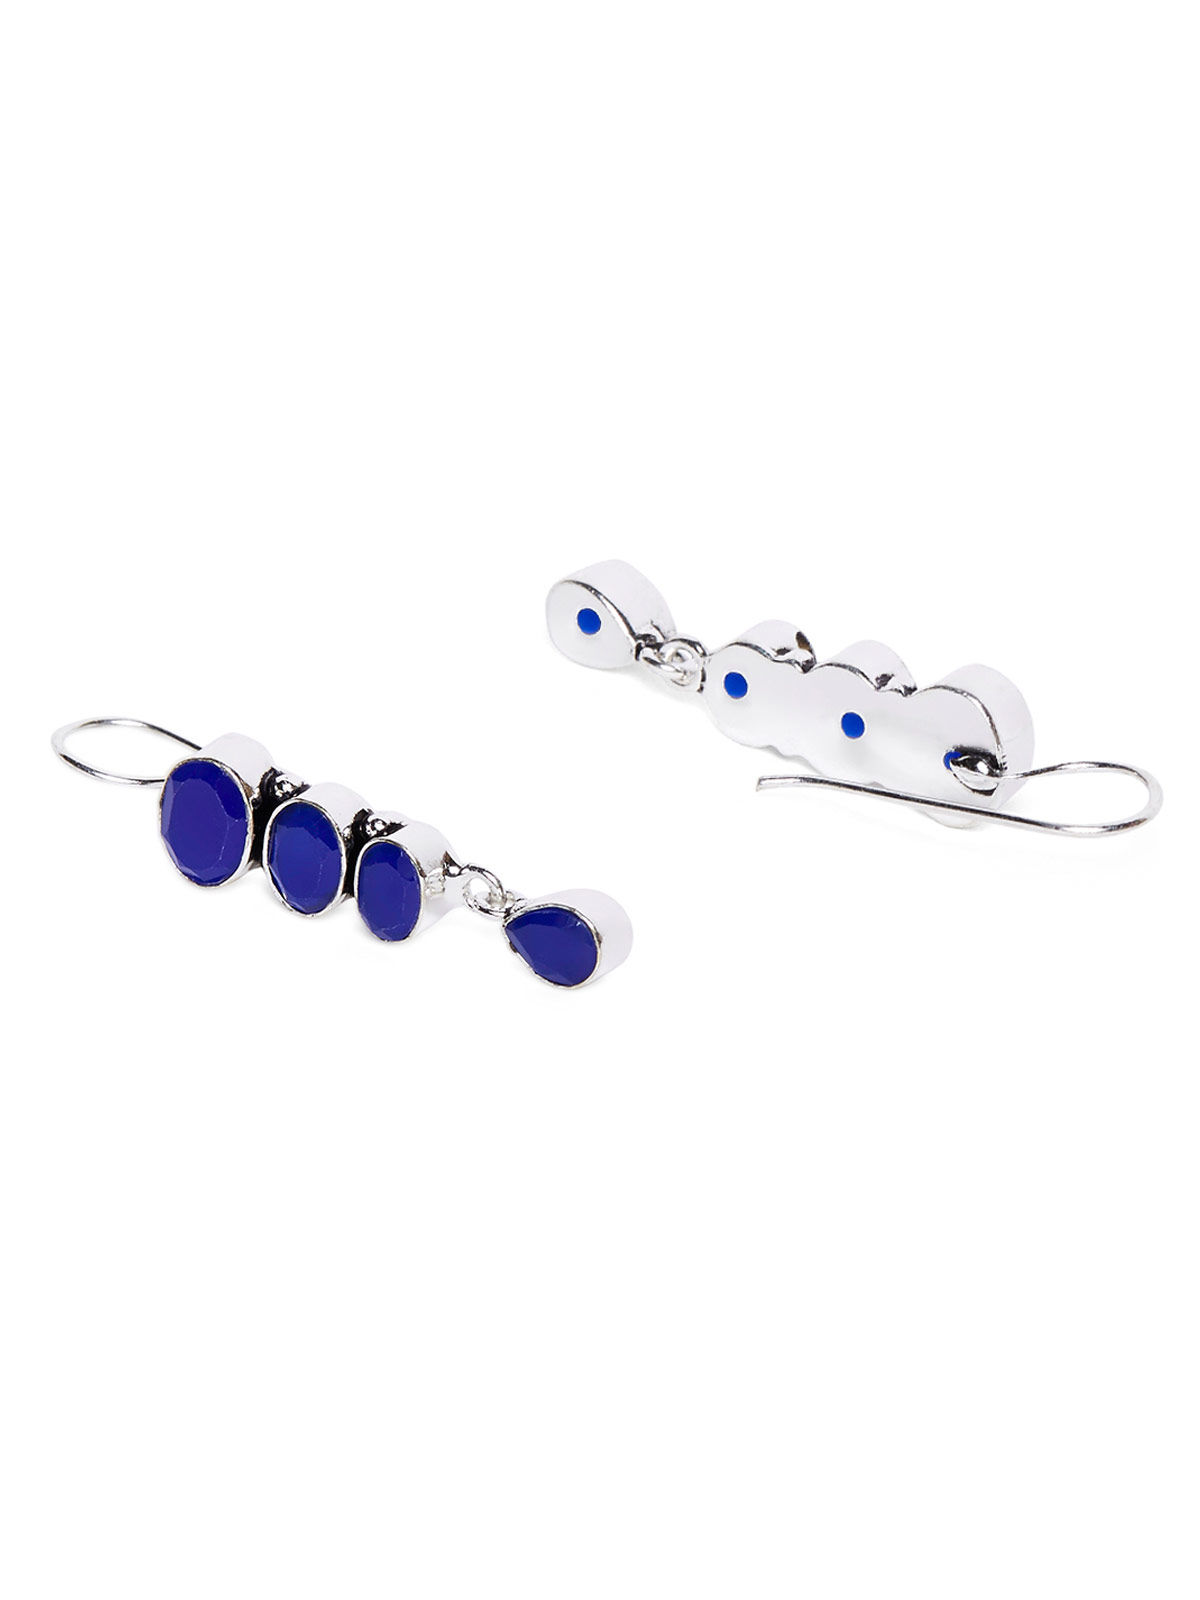 Imli Street dark blue color brass earrings set